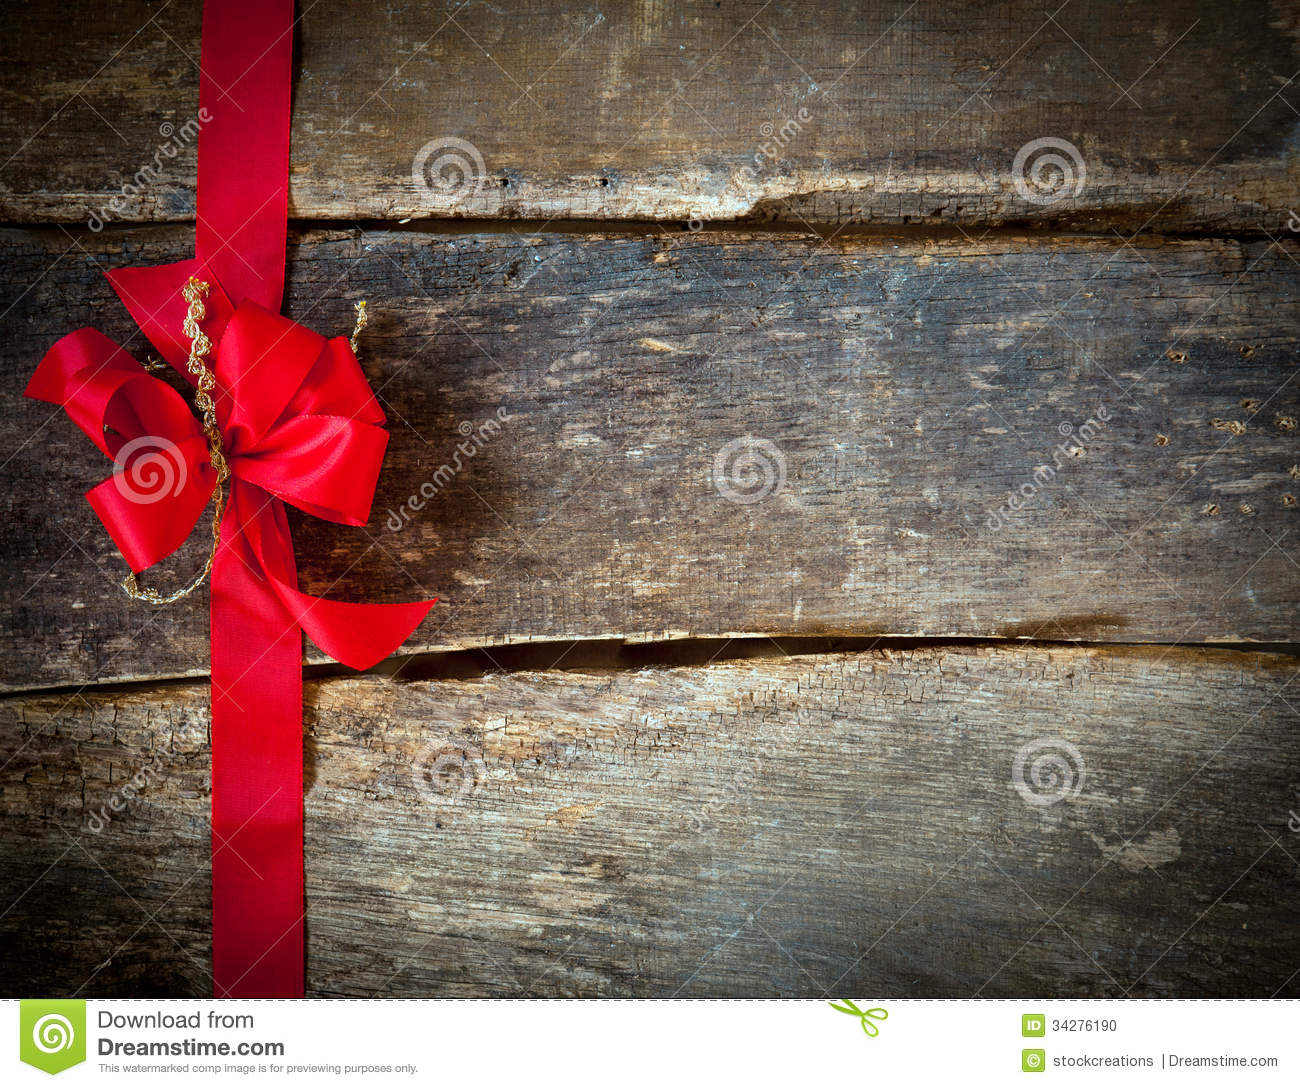 Festive Red Bow For A Christmas Card Stock Photo - Image of rustic ...